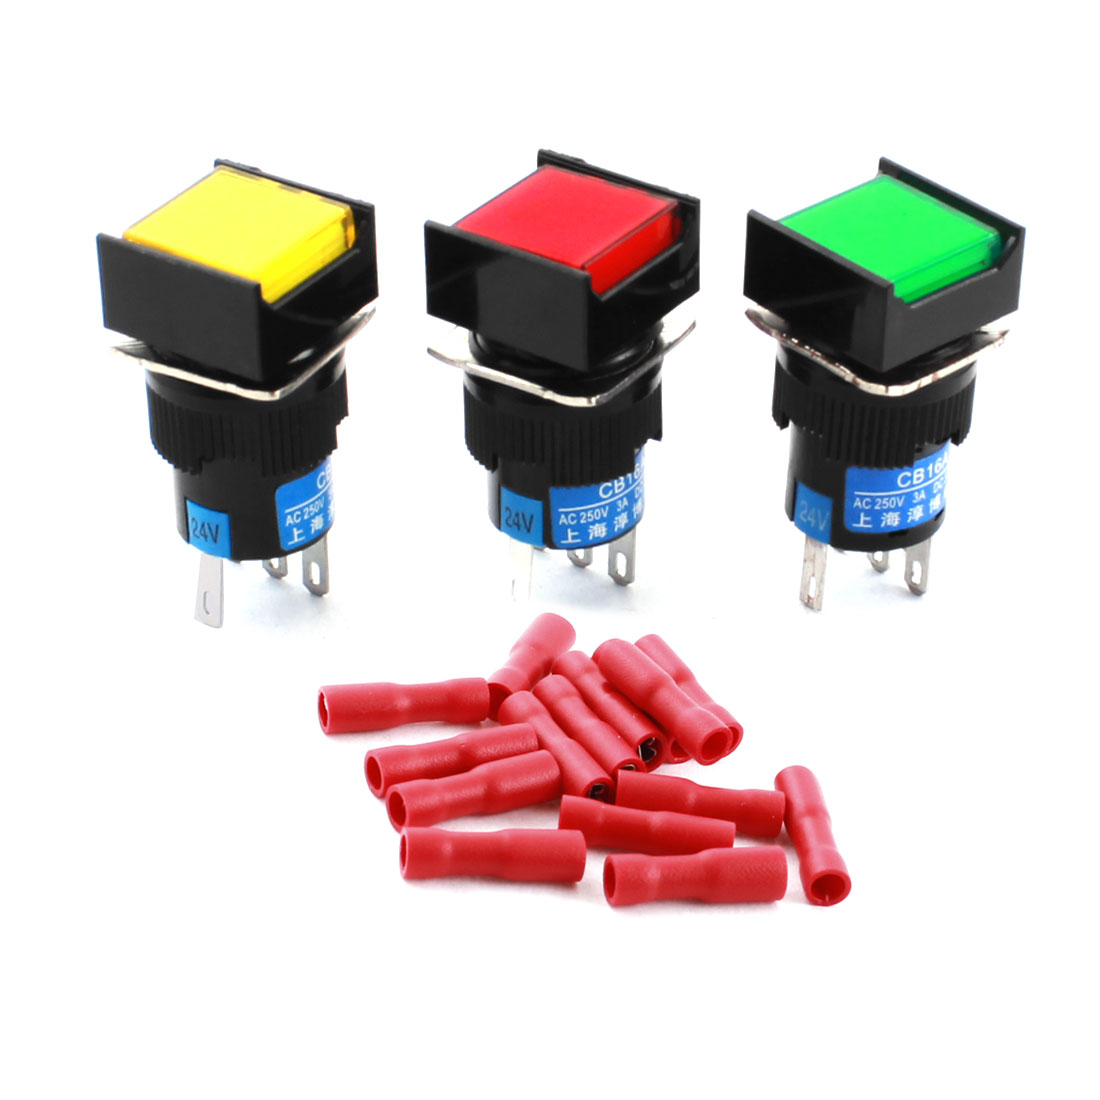 3Pcs DC 24V Red Green Yellow Indicator Light 5Pins 16mm Panel Mount SPDT Latching Square Pushbutton Switch + 15pcs Crimp Connectors